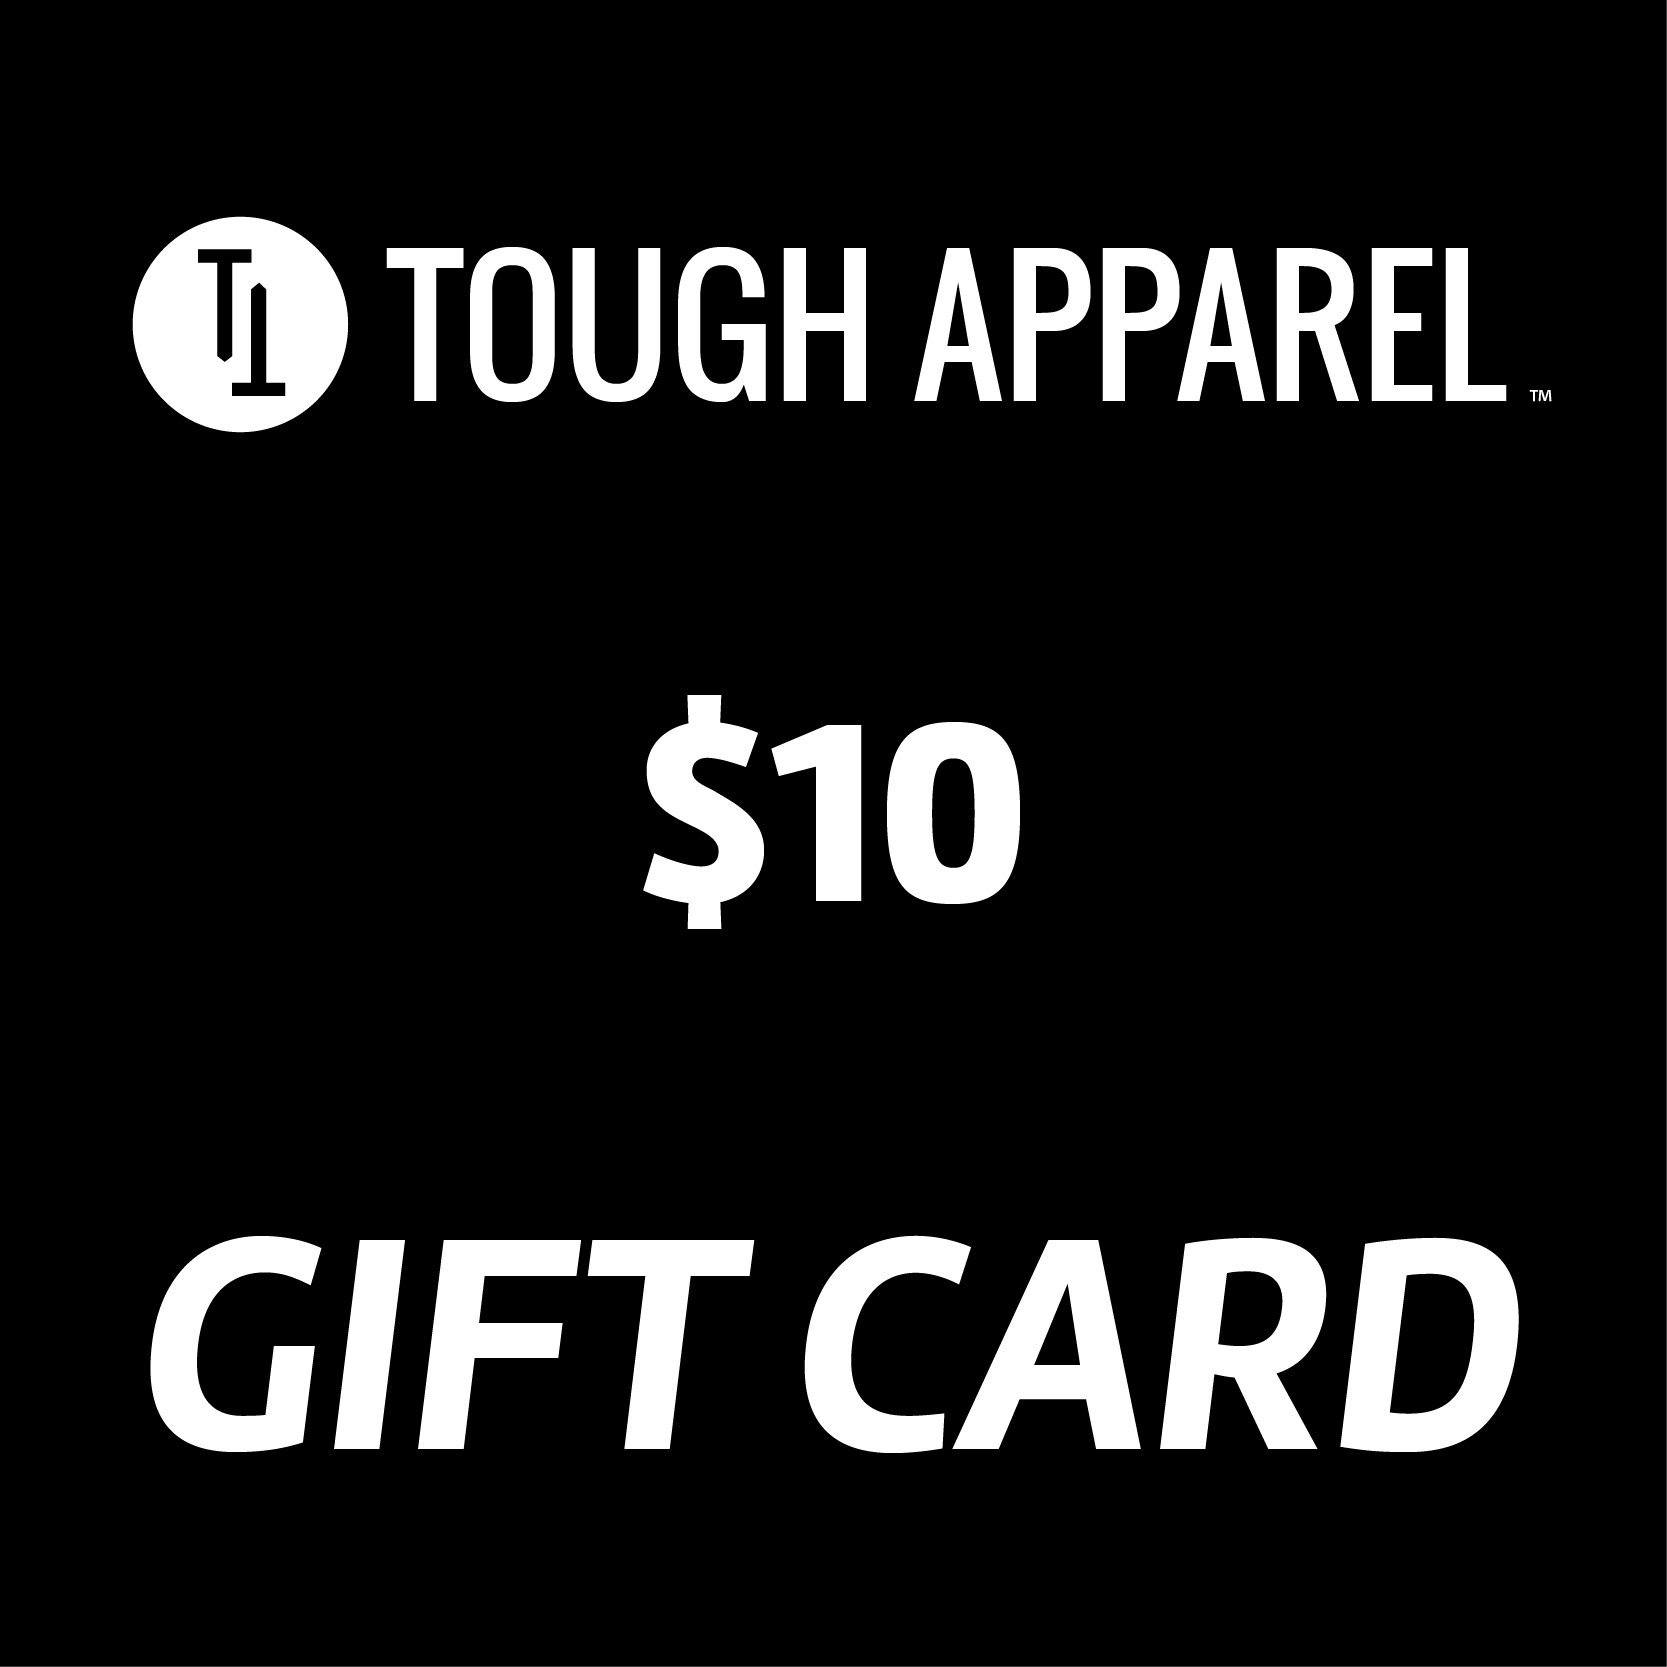 Tough Apparel Gift Card (electronic) - Tough Tie